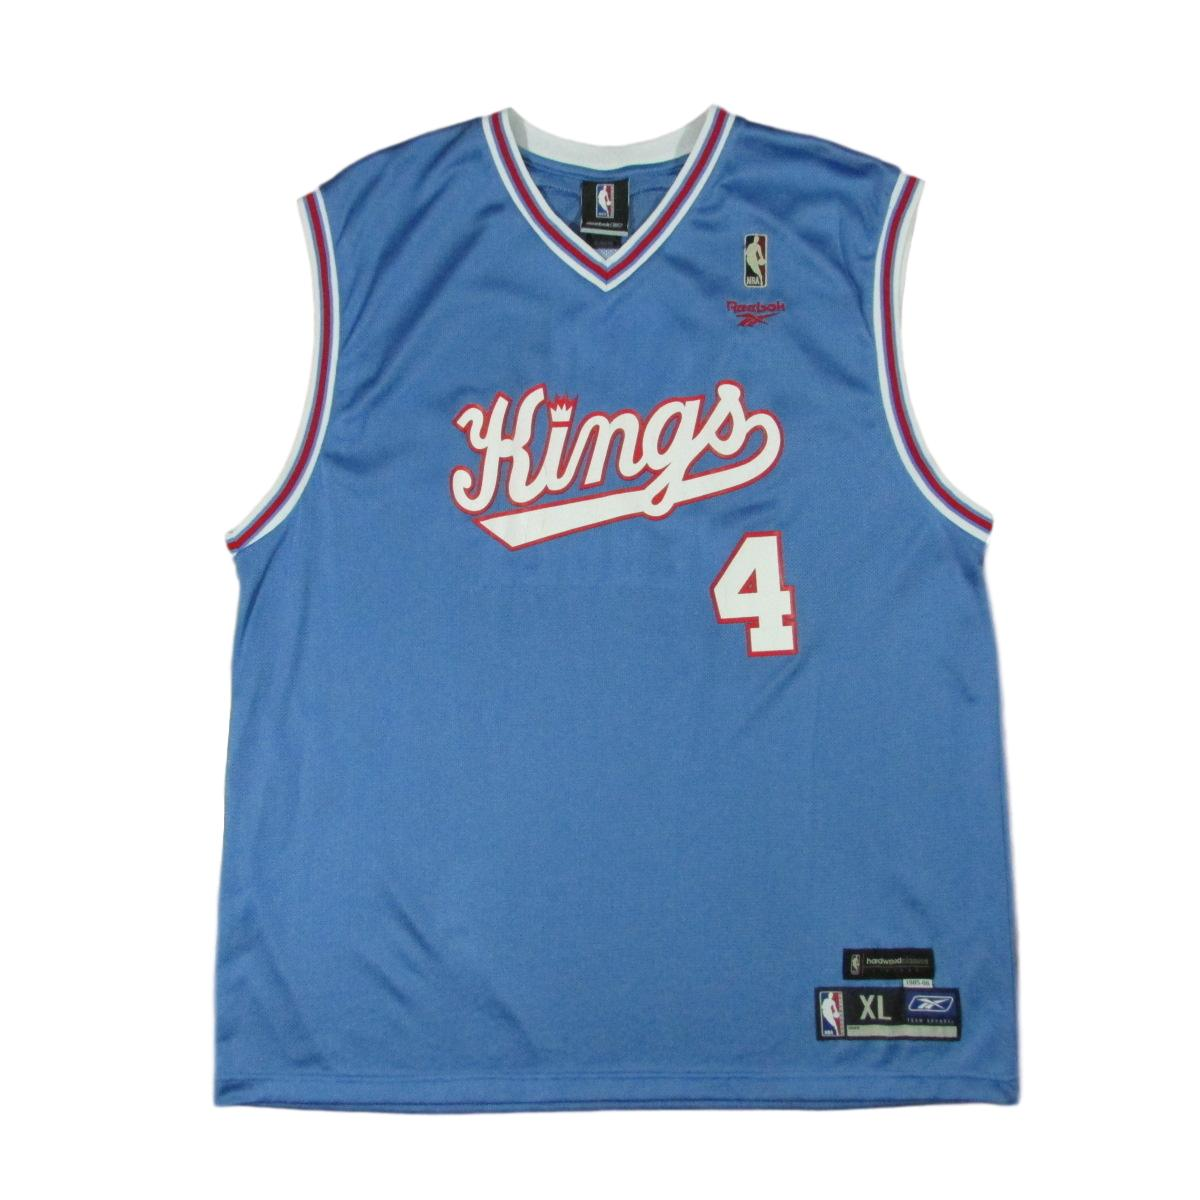 Sacramento Kings Chris Webber 1985 Royals Throwback Jersey Reebok Sz XL